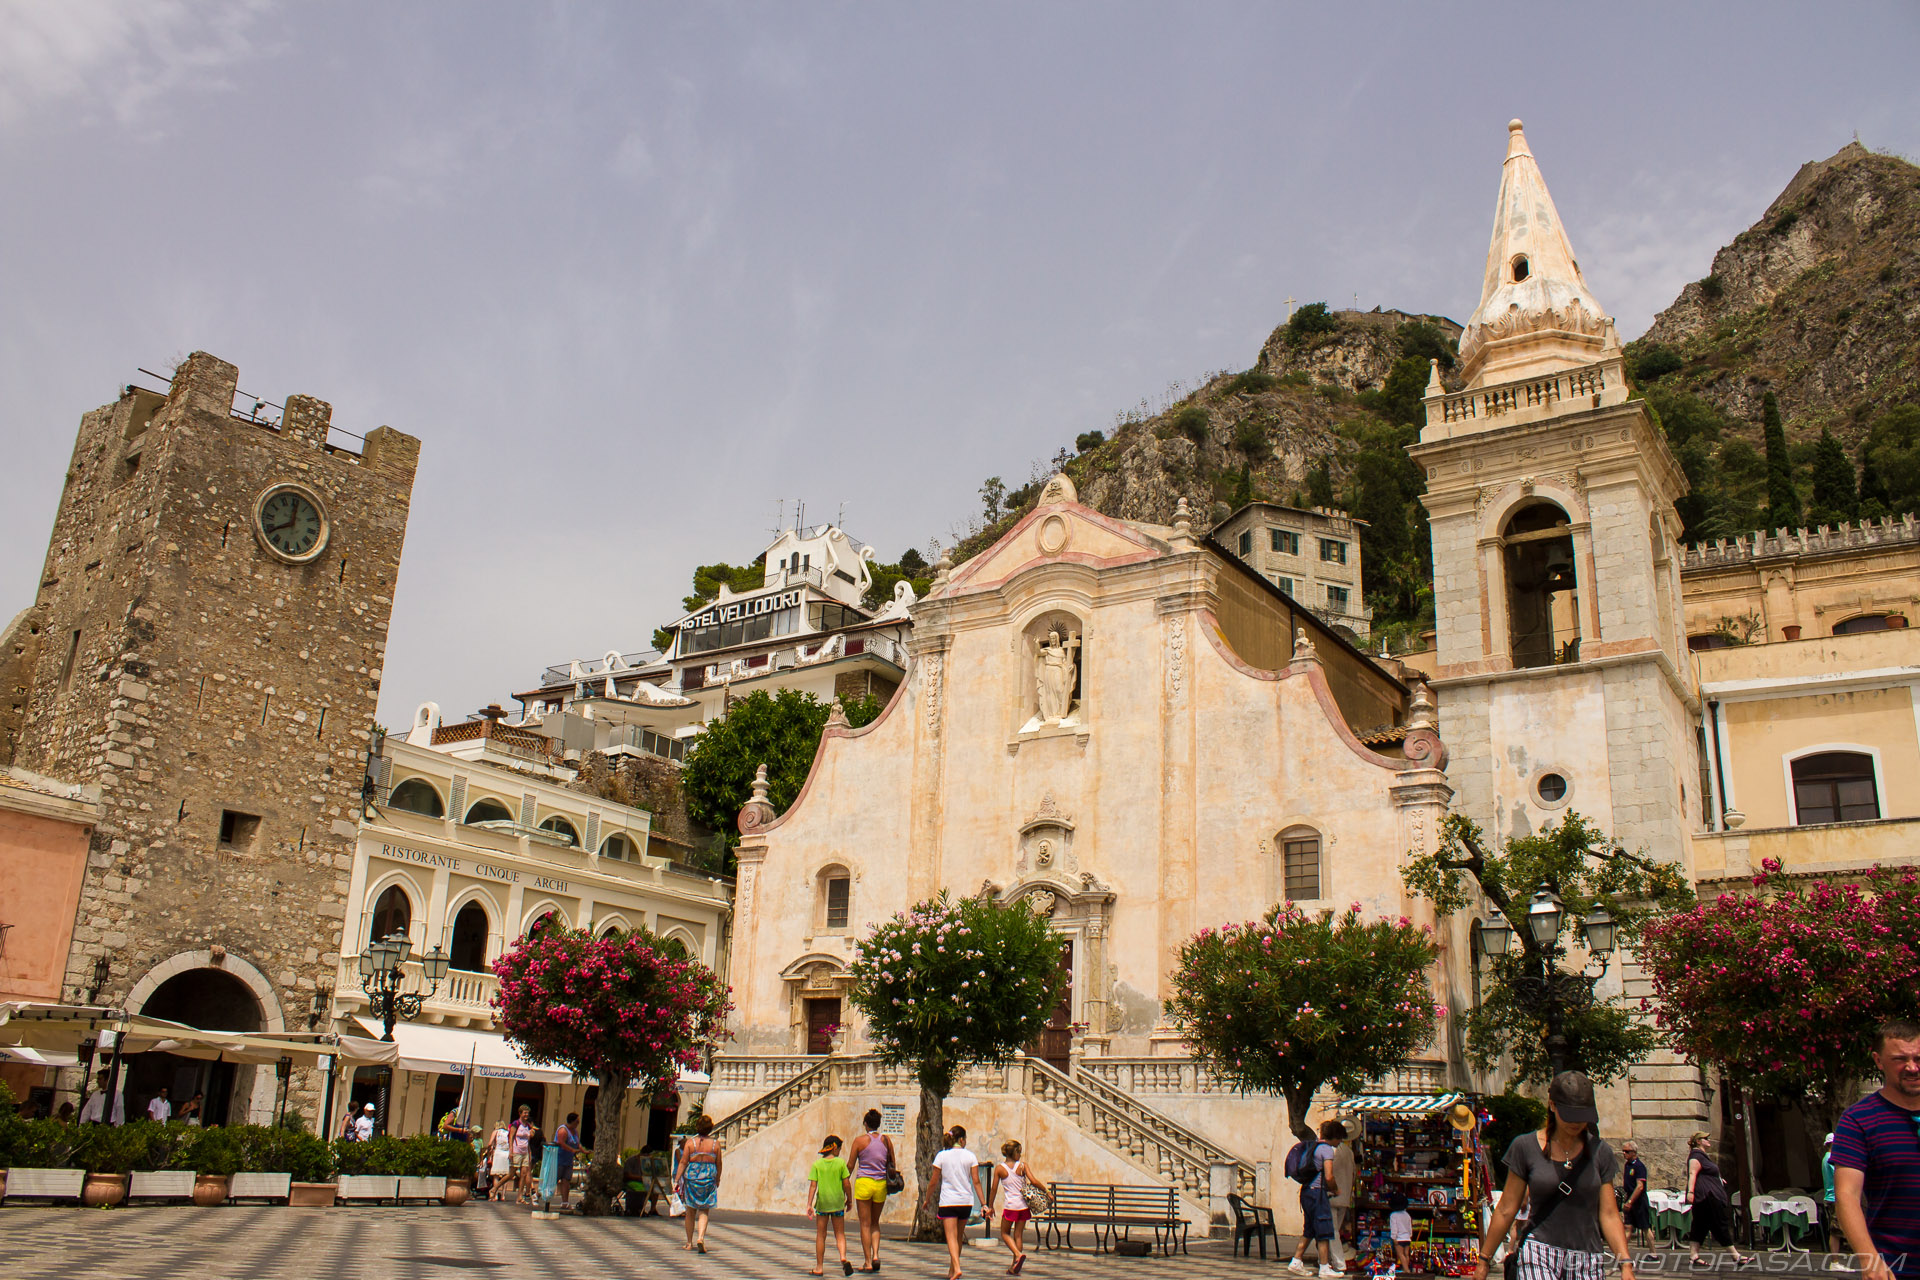 https://photorasa.com/taormina/taormina-town-church/